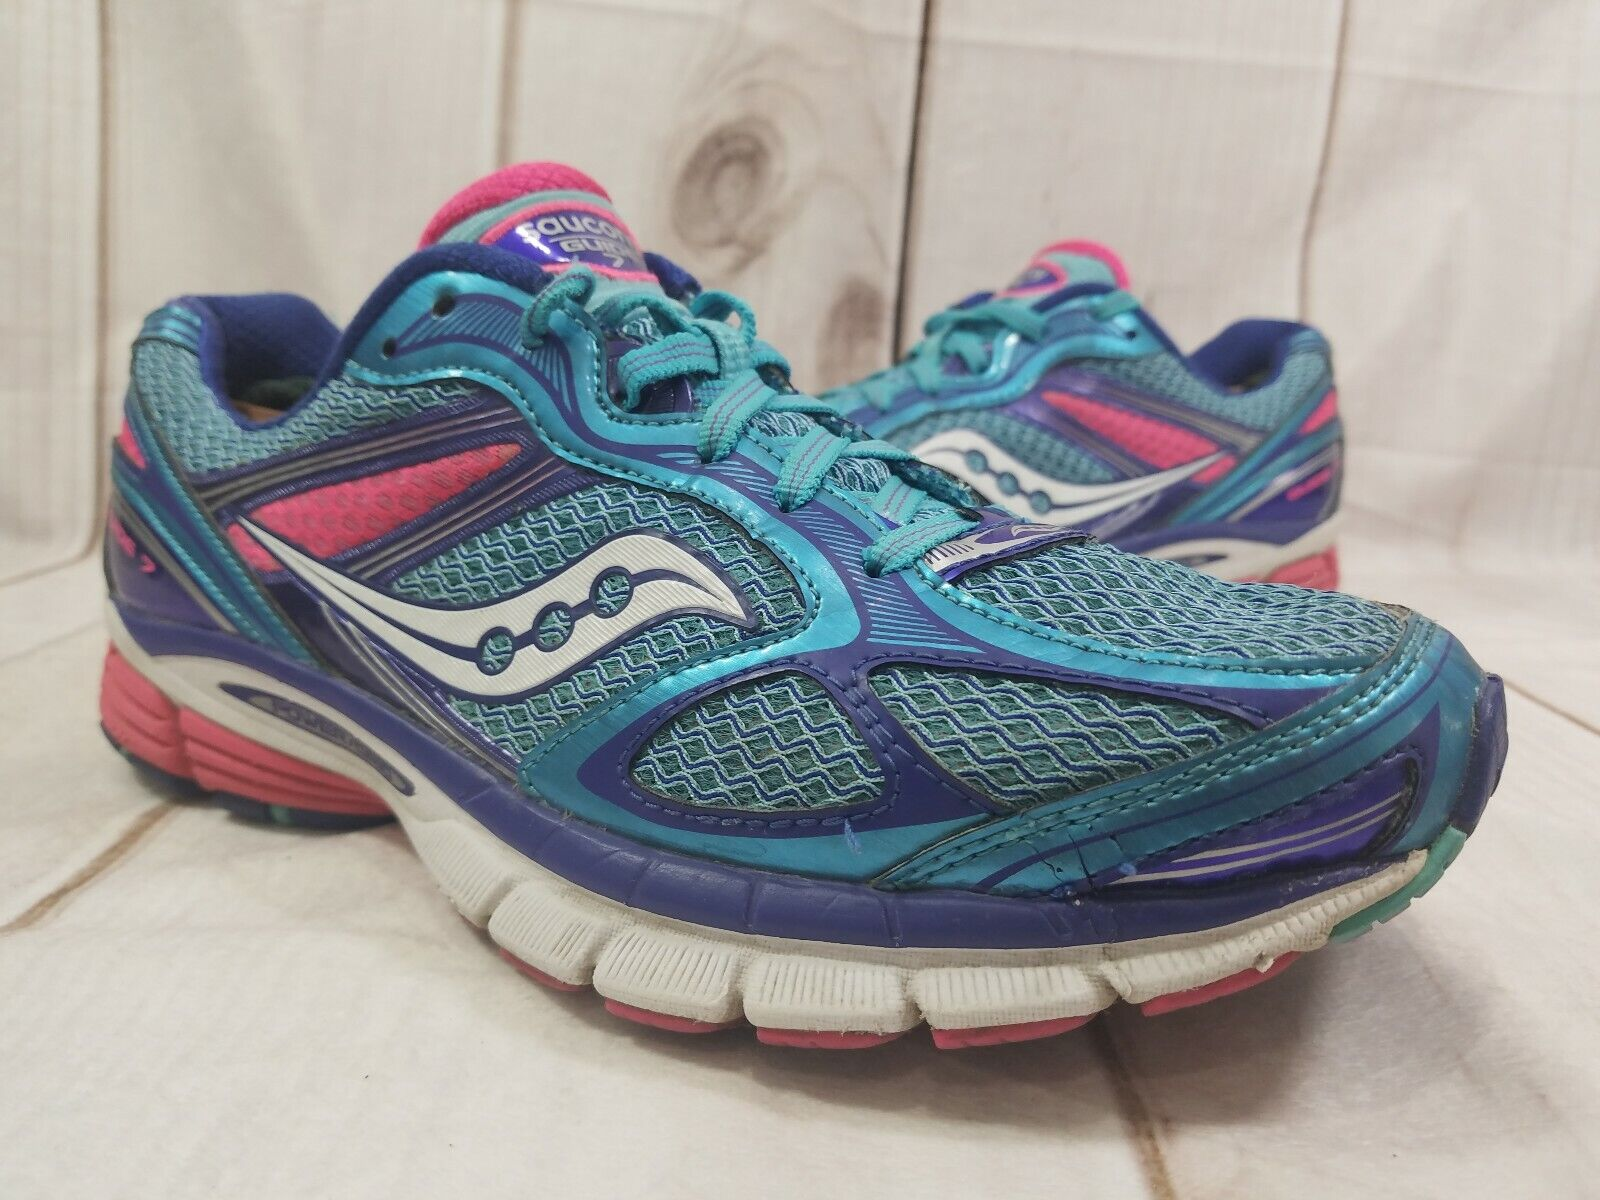 Saucony Guide 7 Size US 10 M (B) Women's Running shoes bluee Pink 10227-3